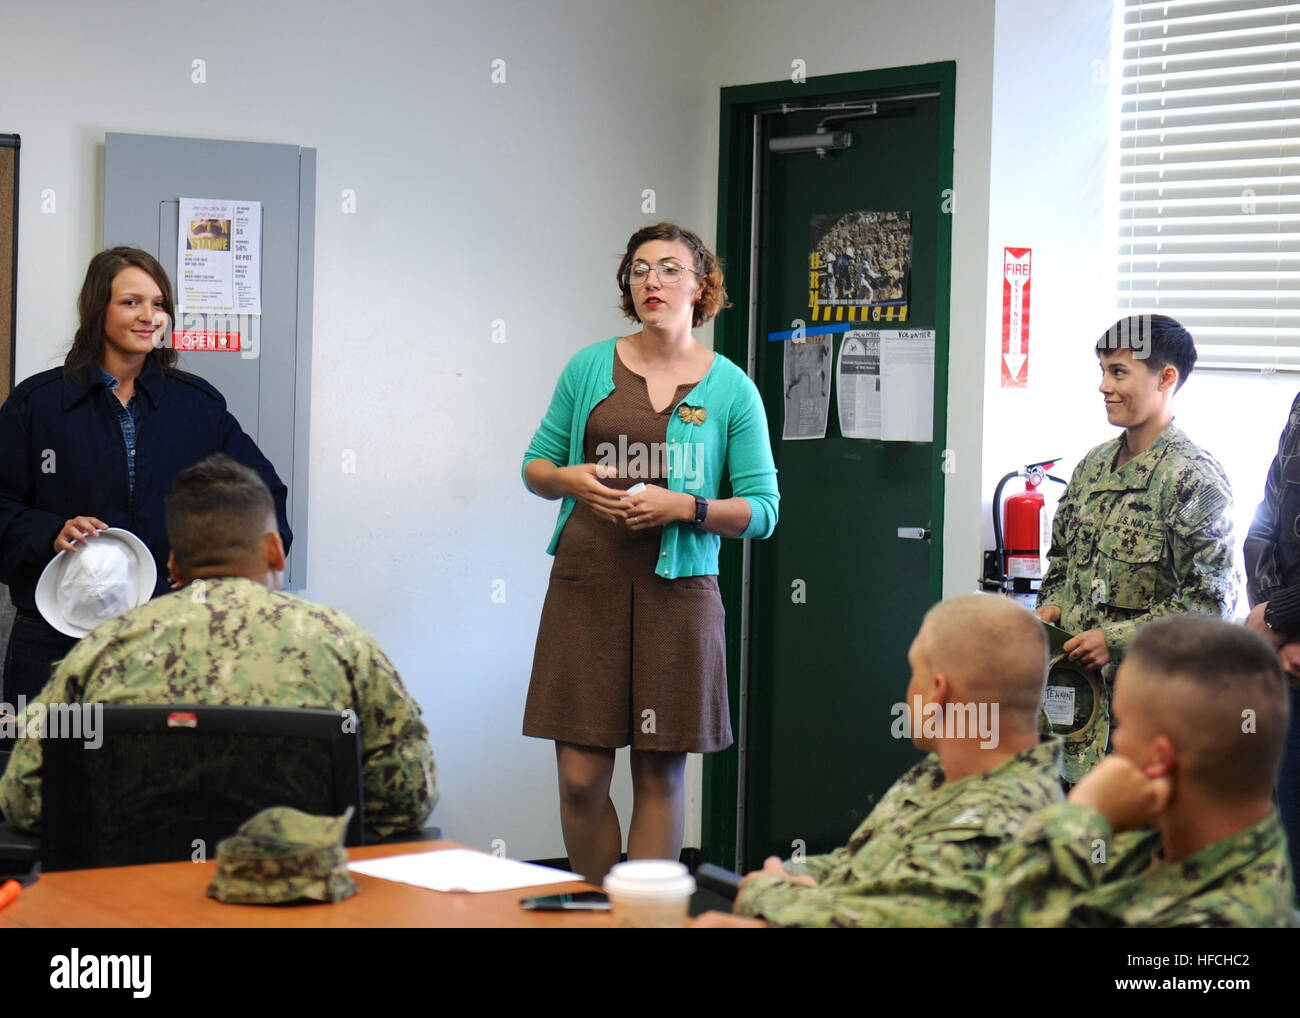 150325-N-KR961-001 PORT HUENEME, Calif. (March 25, 2015) – Ens. Alexis Anderson, assigned to Naval Mobile Construction - Stock Image